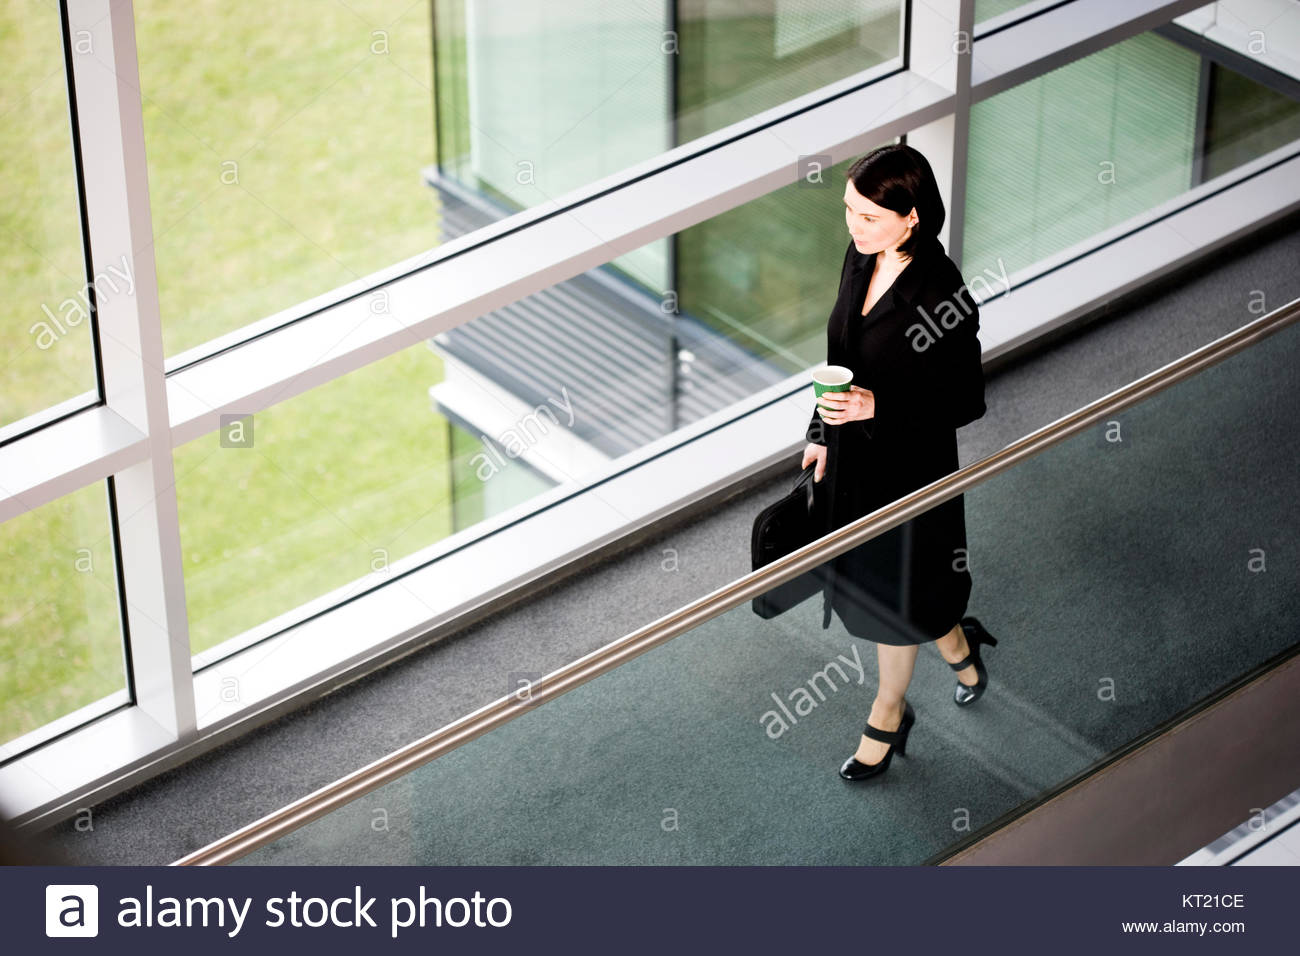 Businesswoman in modern office building, arriving for work - Stock Image